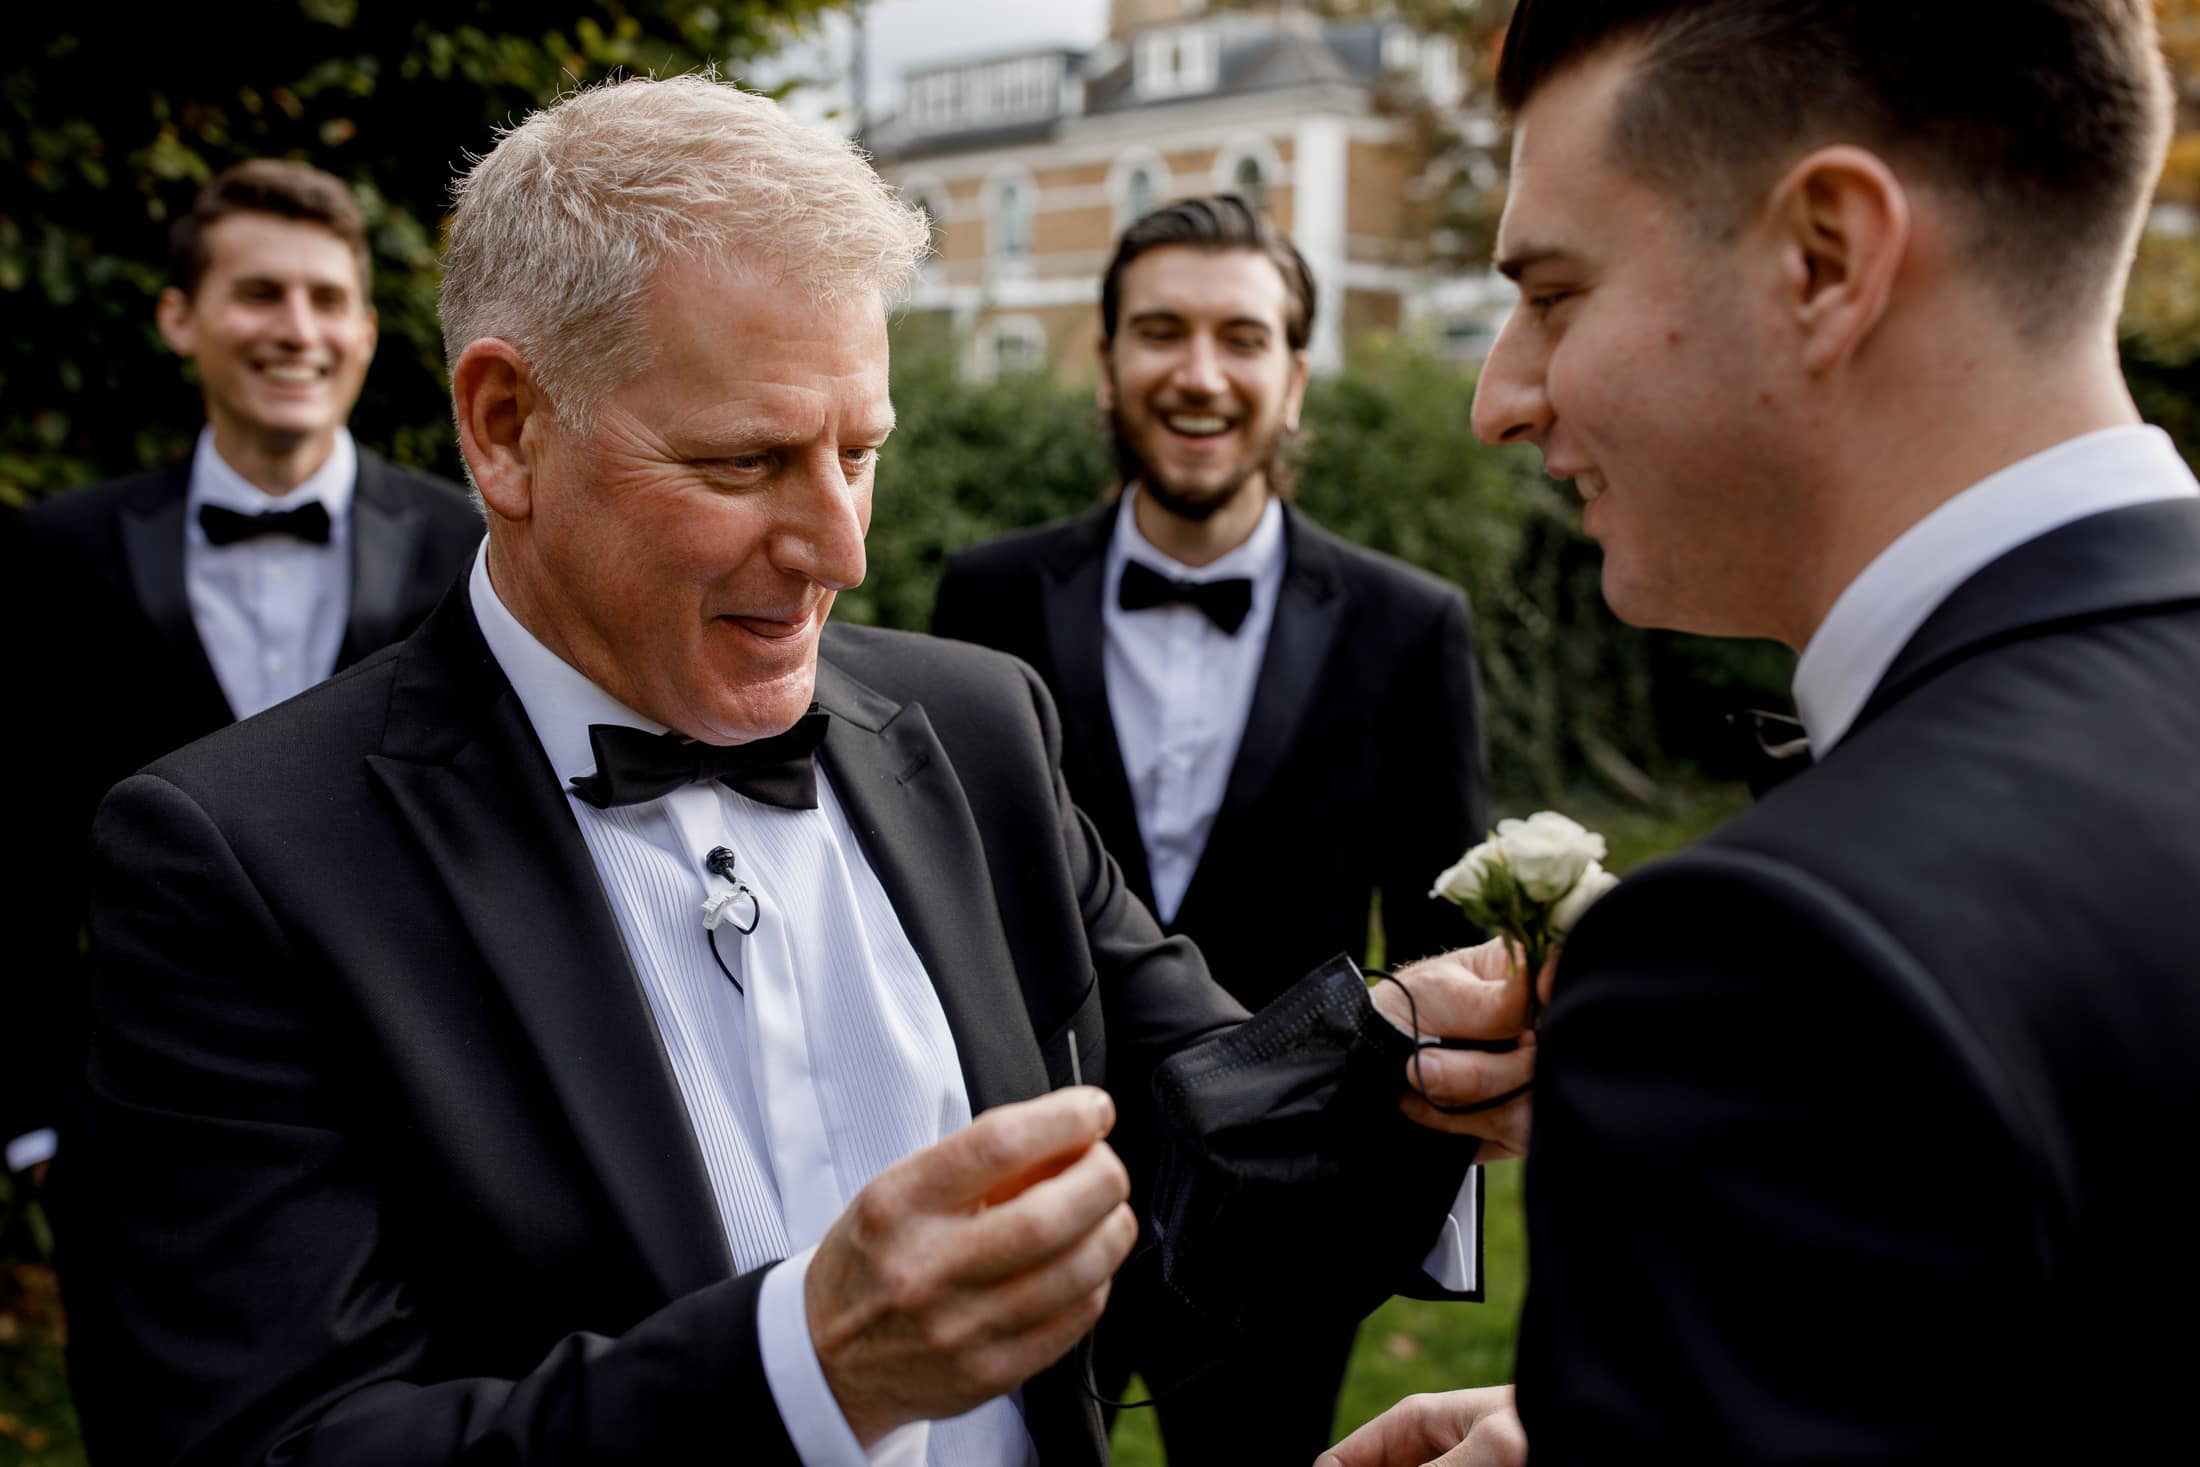 father of the groom pinning lapel flower